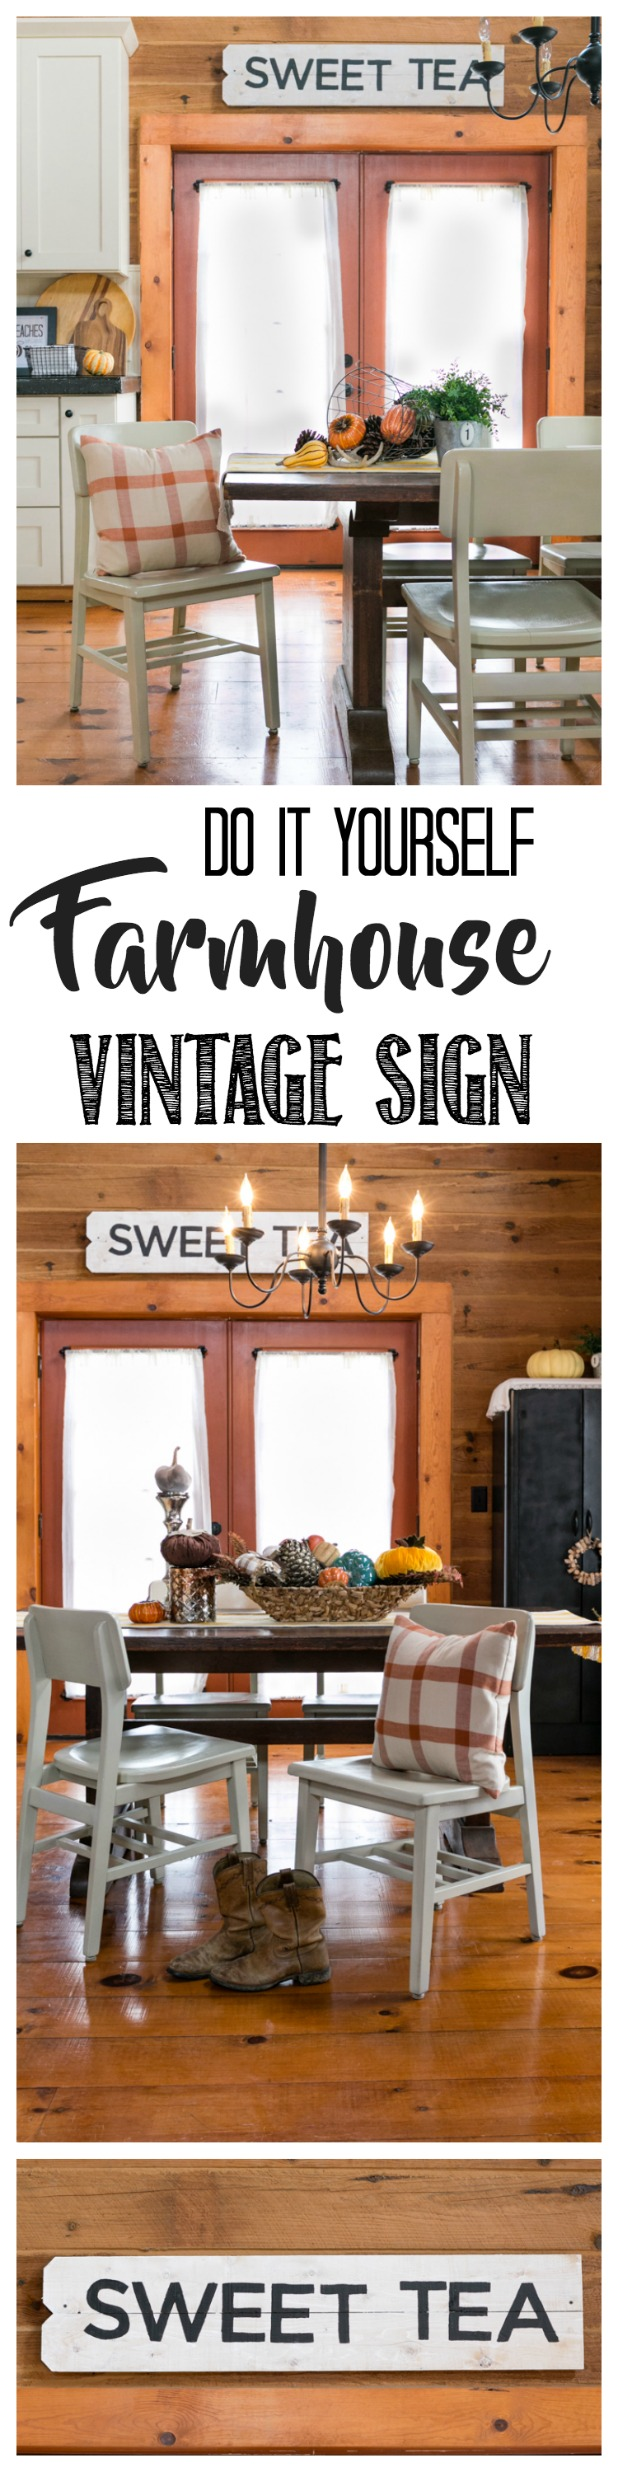 DIY Vintage Farmhouse Kitchen Sign Made From Pickets. Complete Tutorial With Photos. Popular Pin!